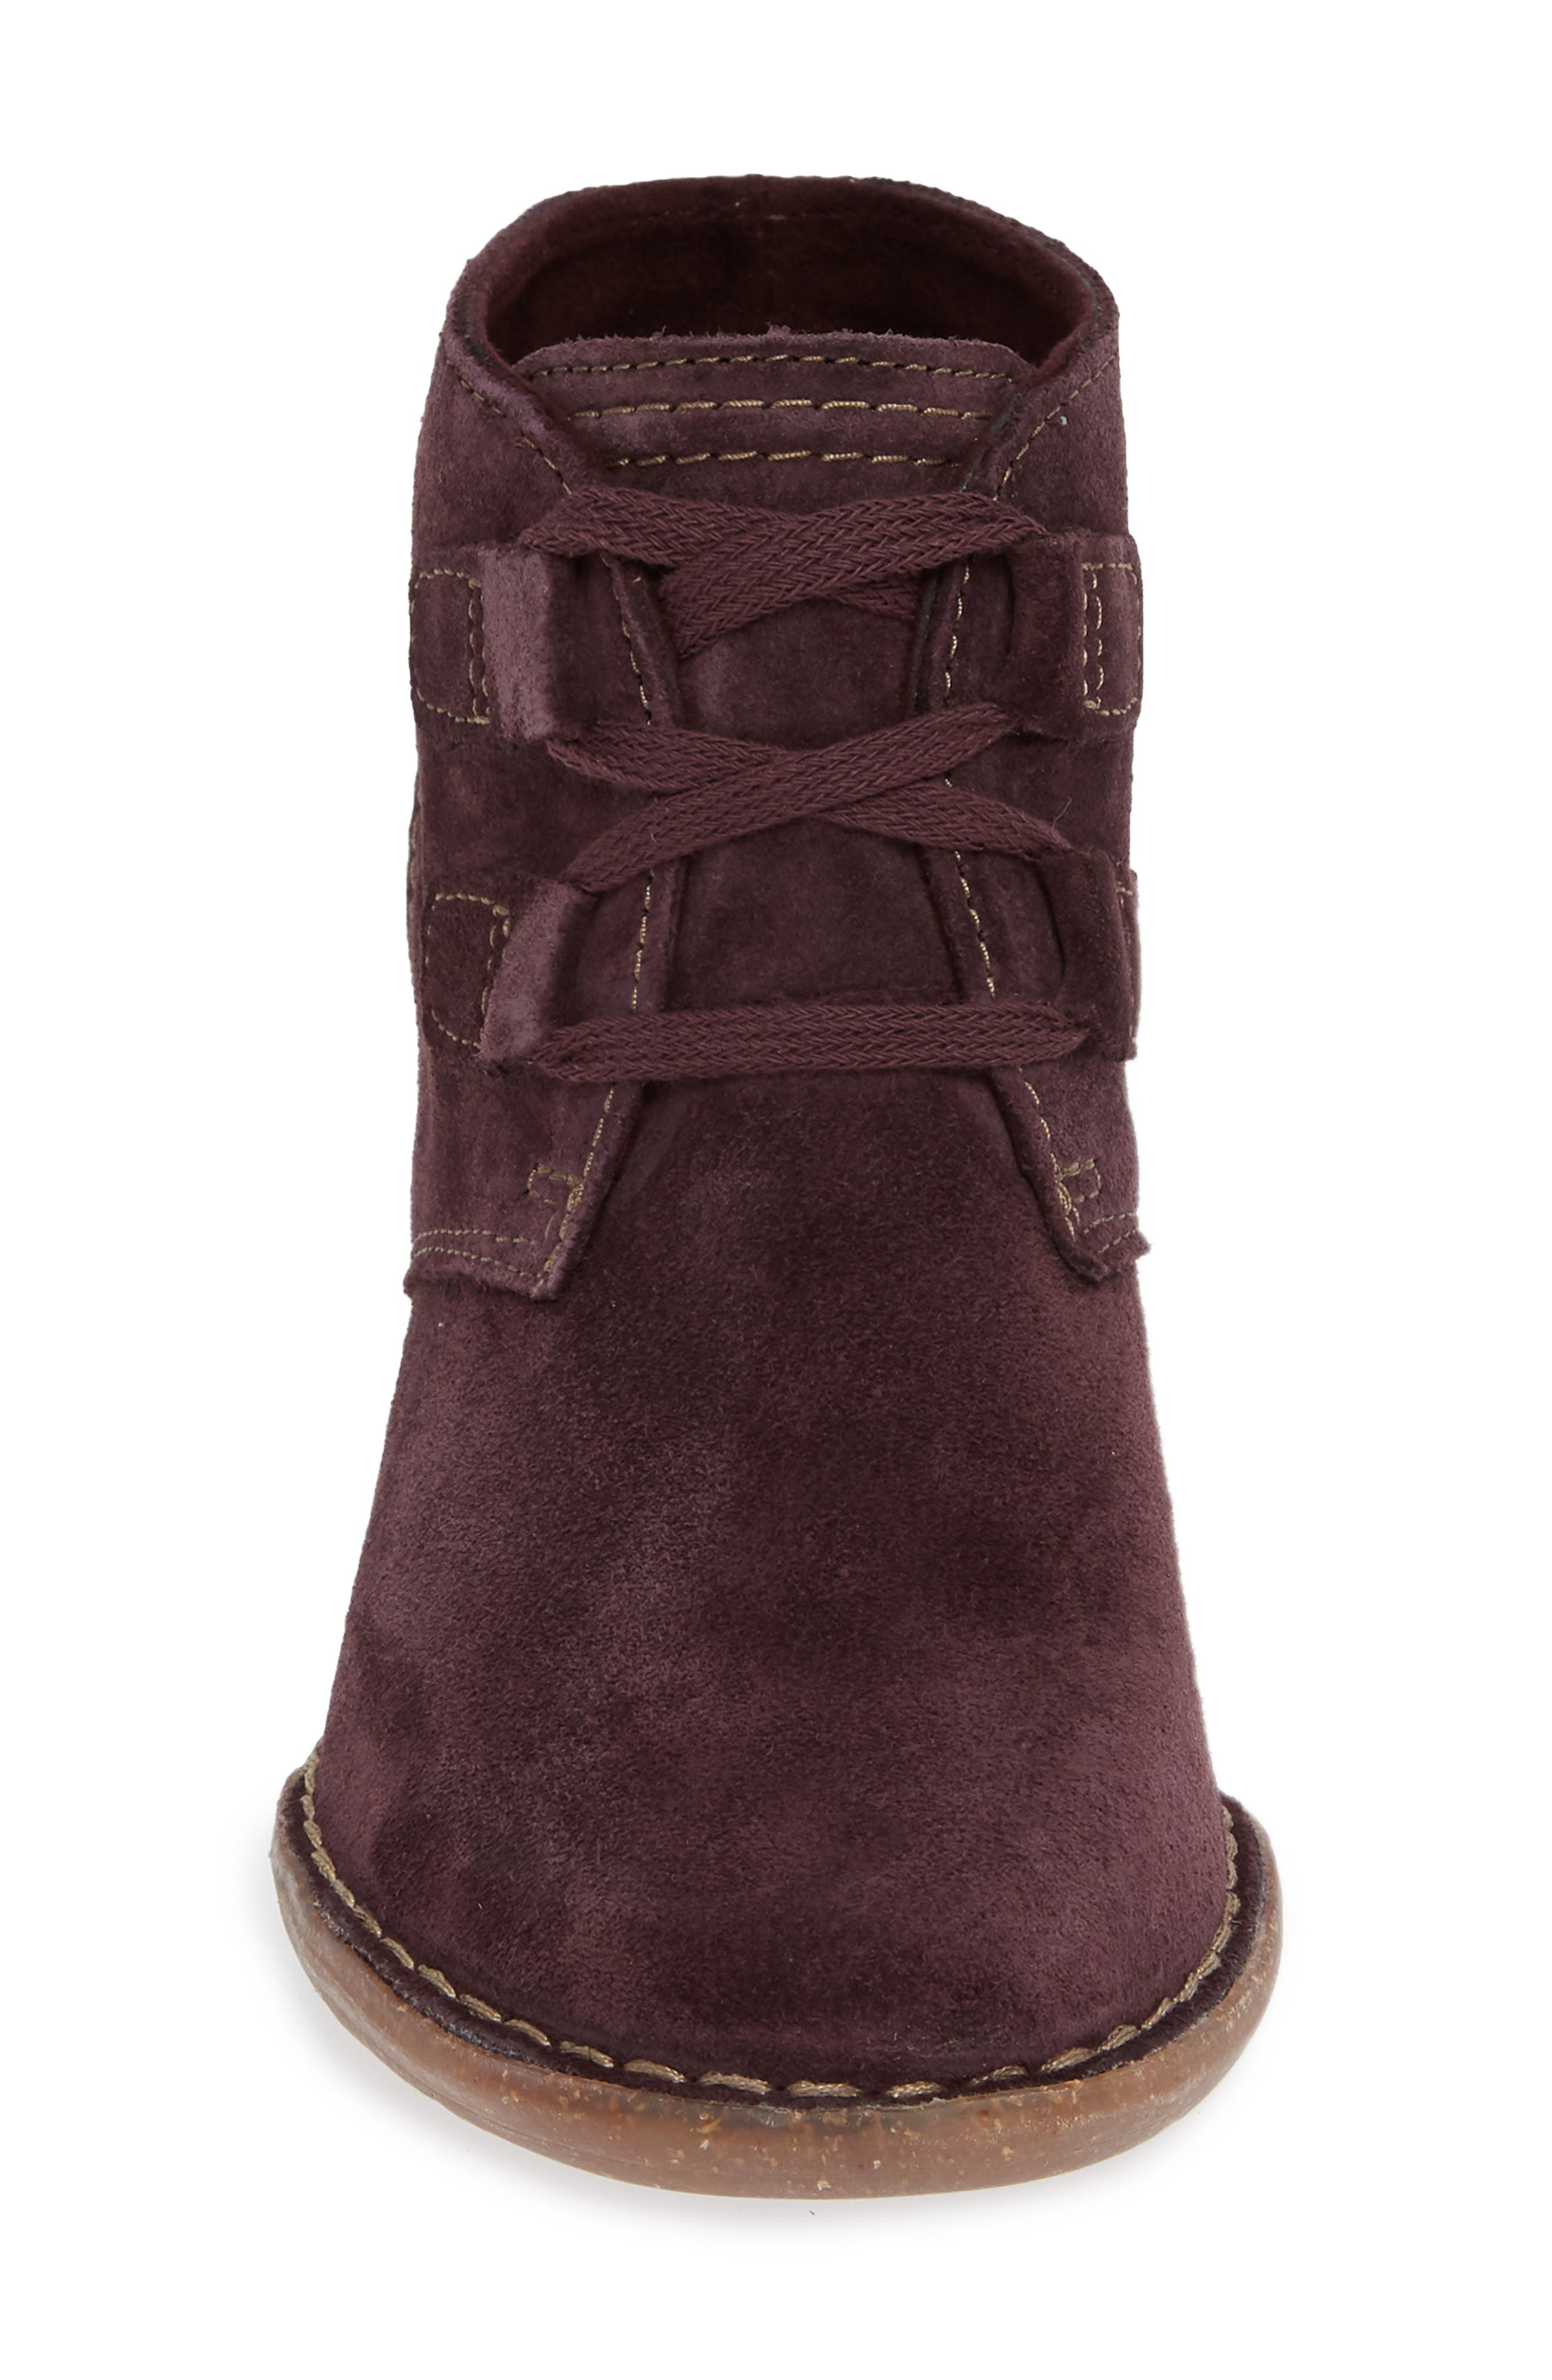 CLARKS<SUP>®</SUP>, Carleta Lyon Ankle Boot, Alternate thumbnail 4, color, AUBERGINE SUEDE